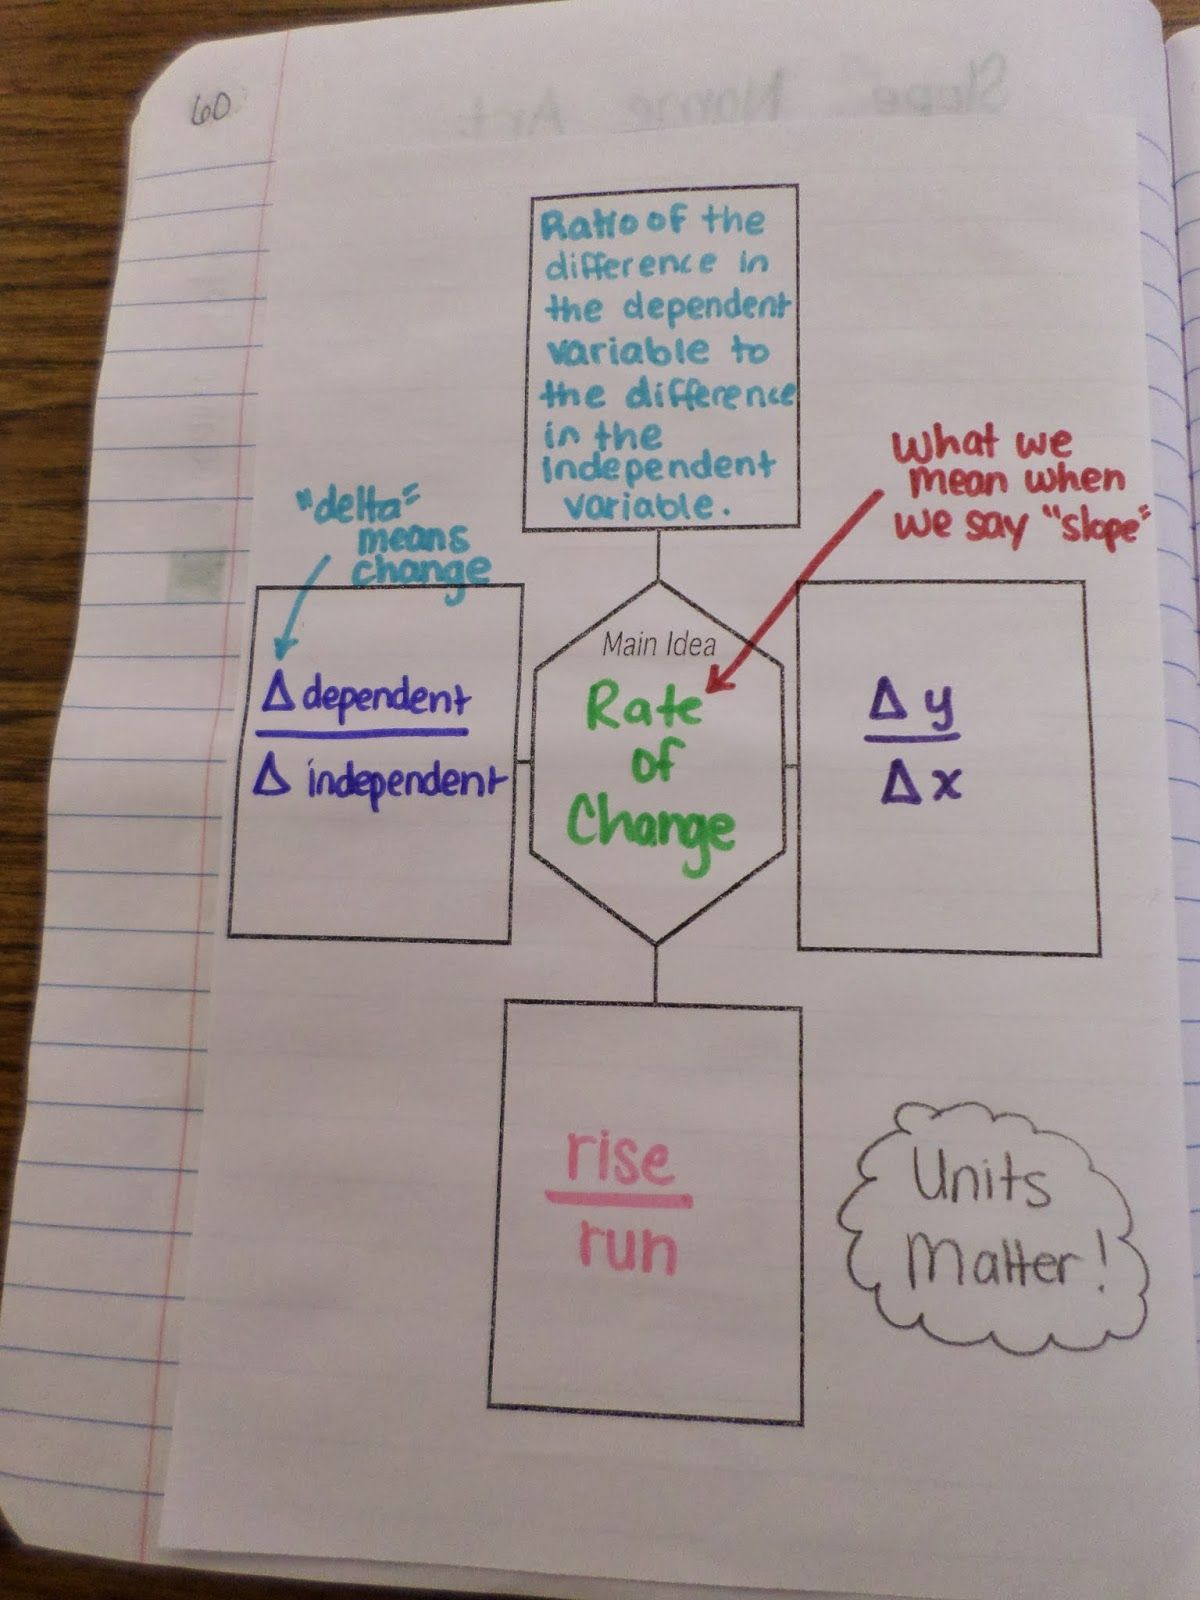 Rate Of Change Graphic Organizer Math Journals Middle School